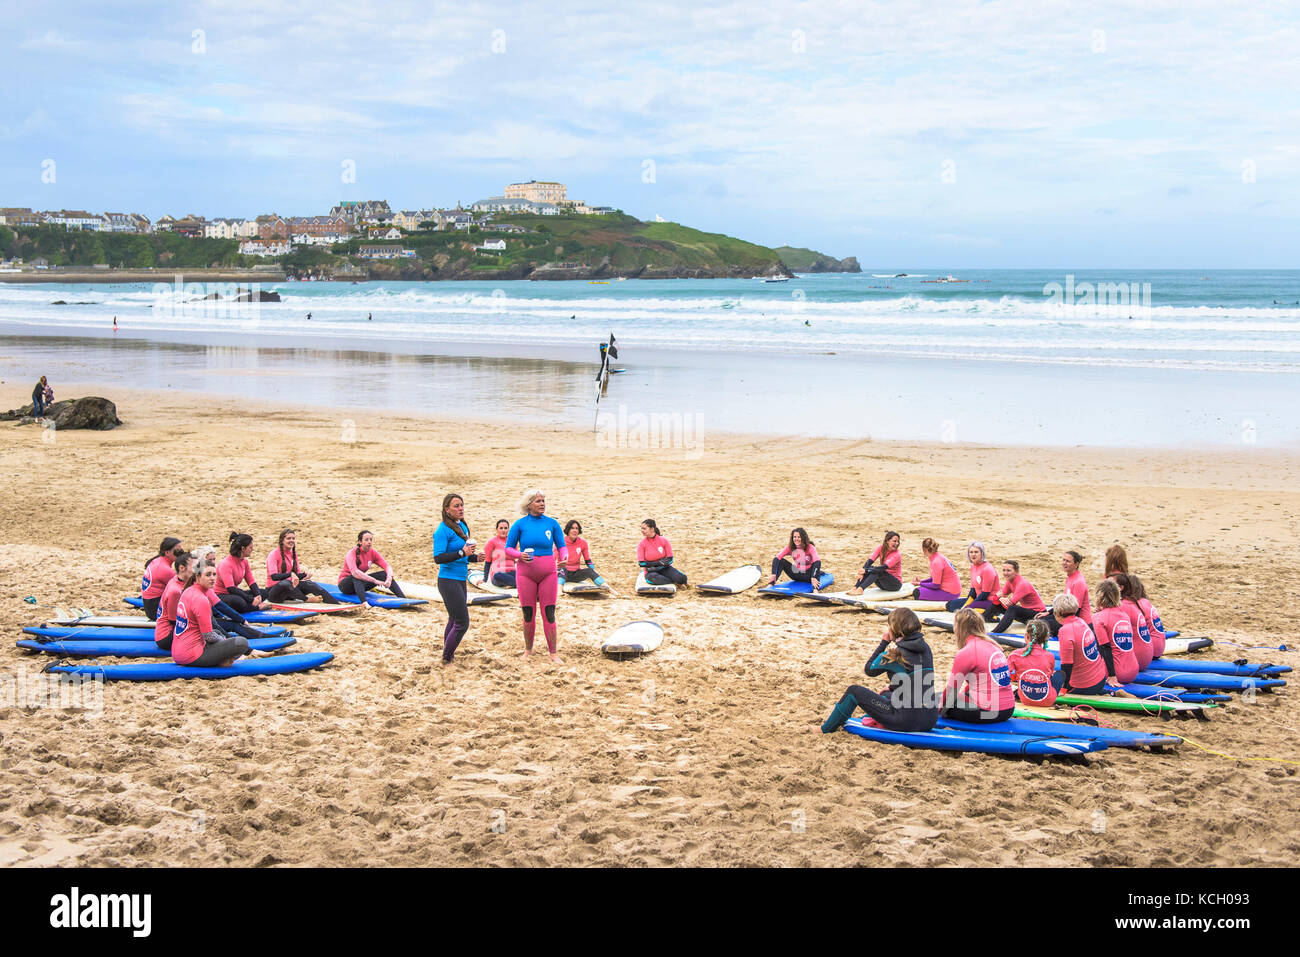 Beginners attending a surfing lesson - Surf Betty's Festival a festival held in Newquay to help empower women through - Stock Image